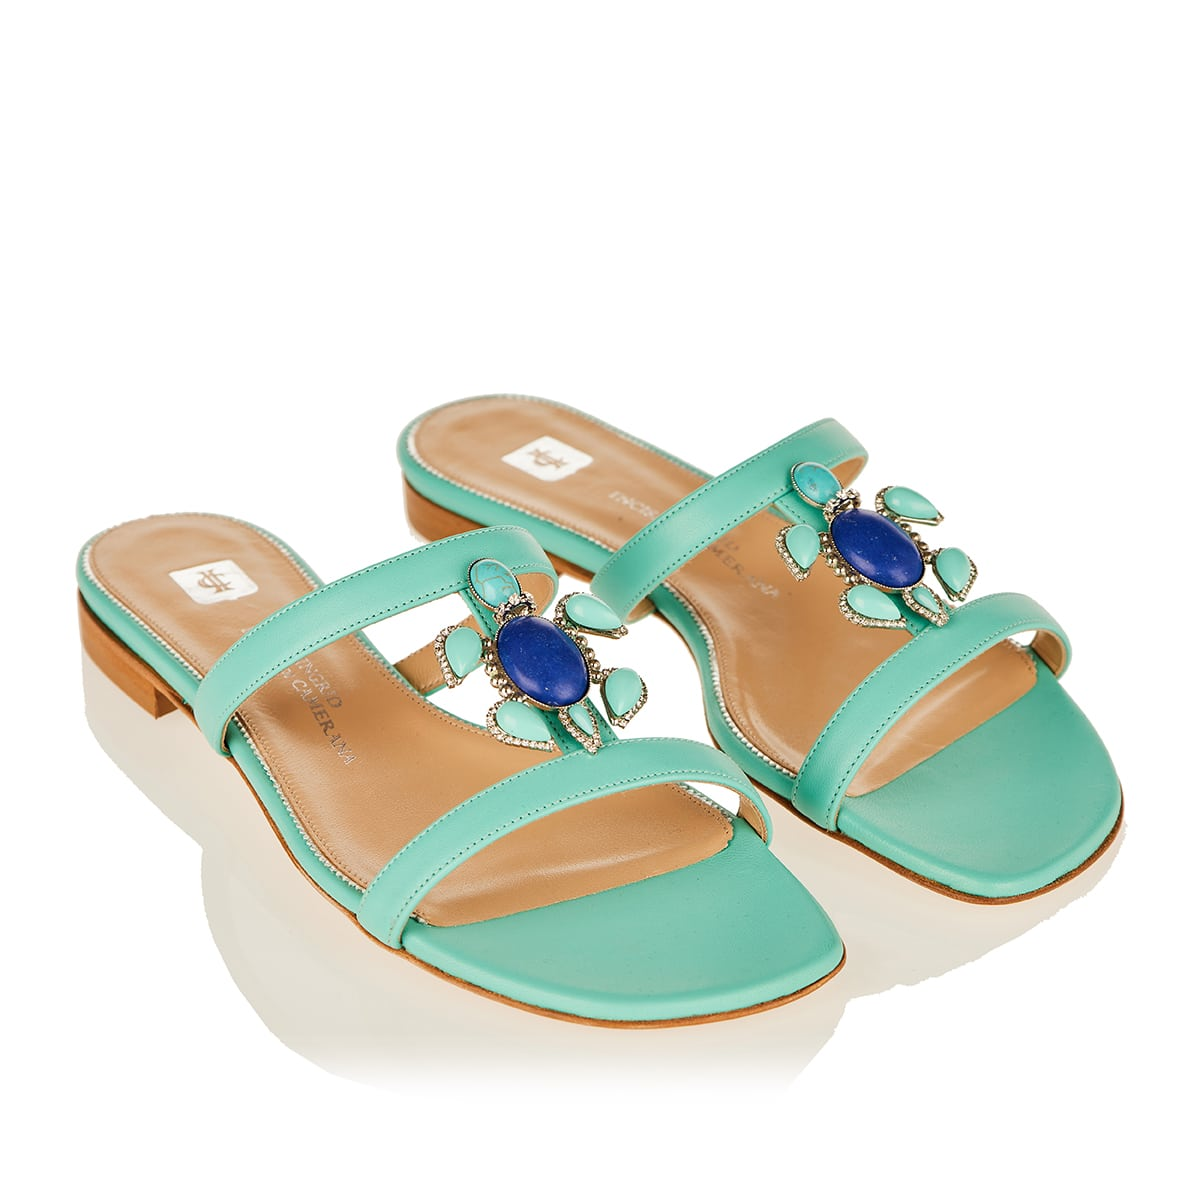 Marina embellished leather slide sandals